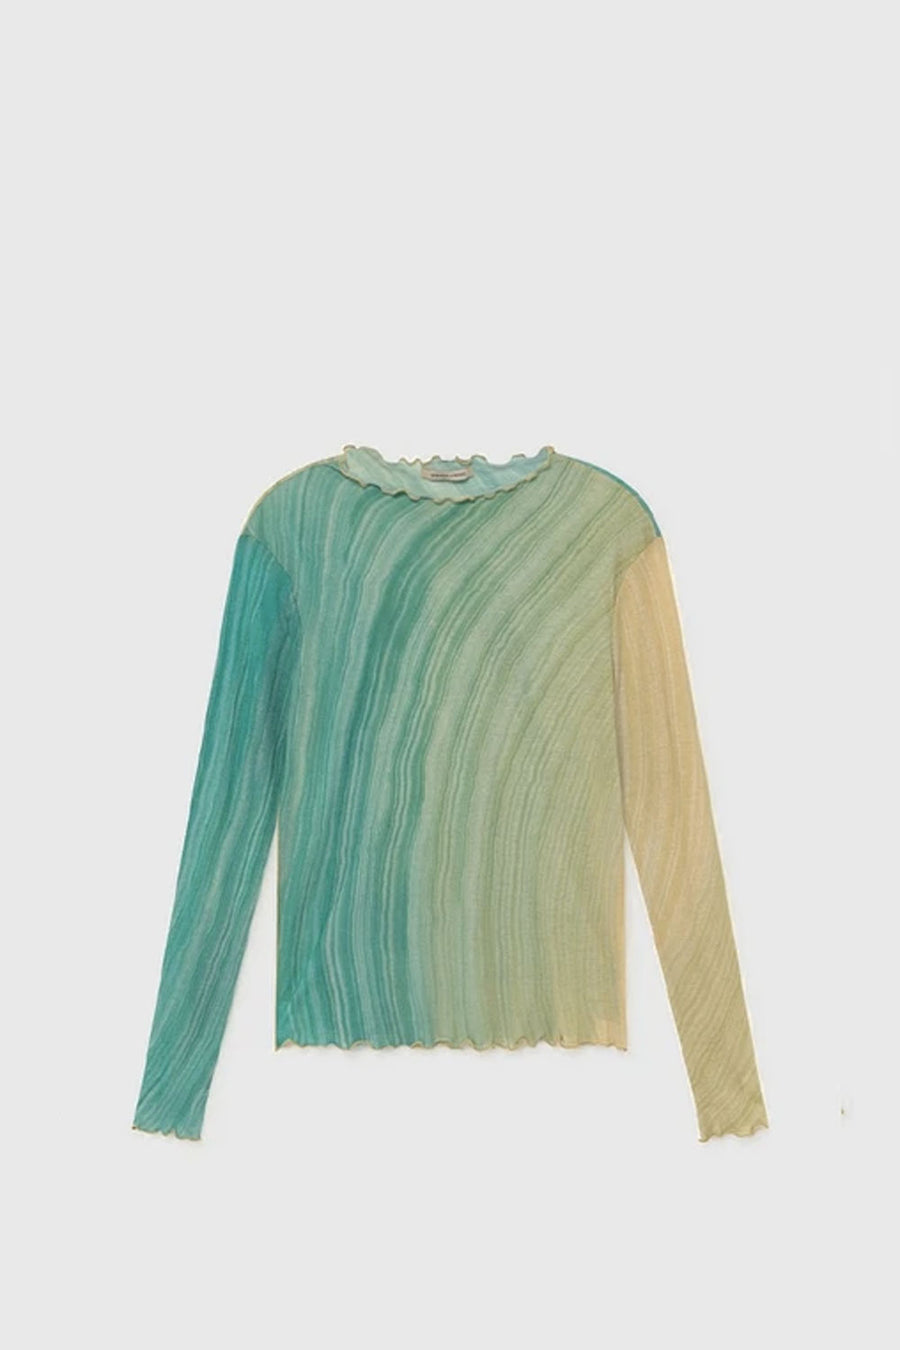 Bonneville Top | Turquoise | Tops NZ | PALOMA WOOL NZ | Black Box Boutique Auckland | Womens Fashion NZ